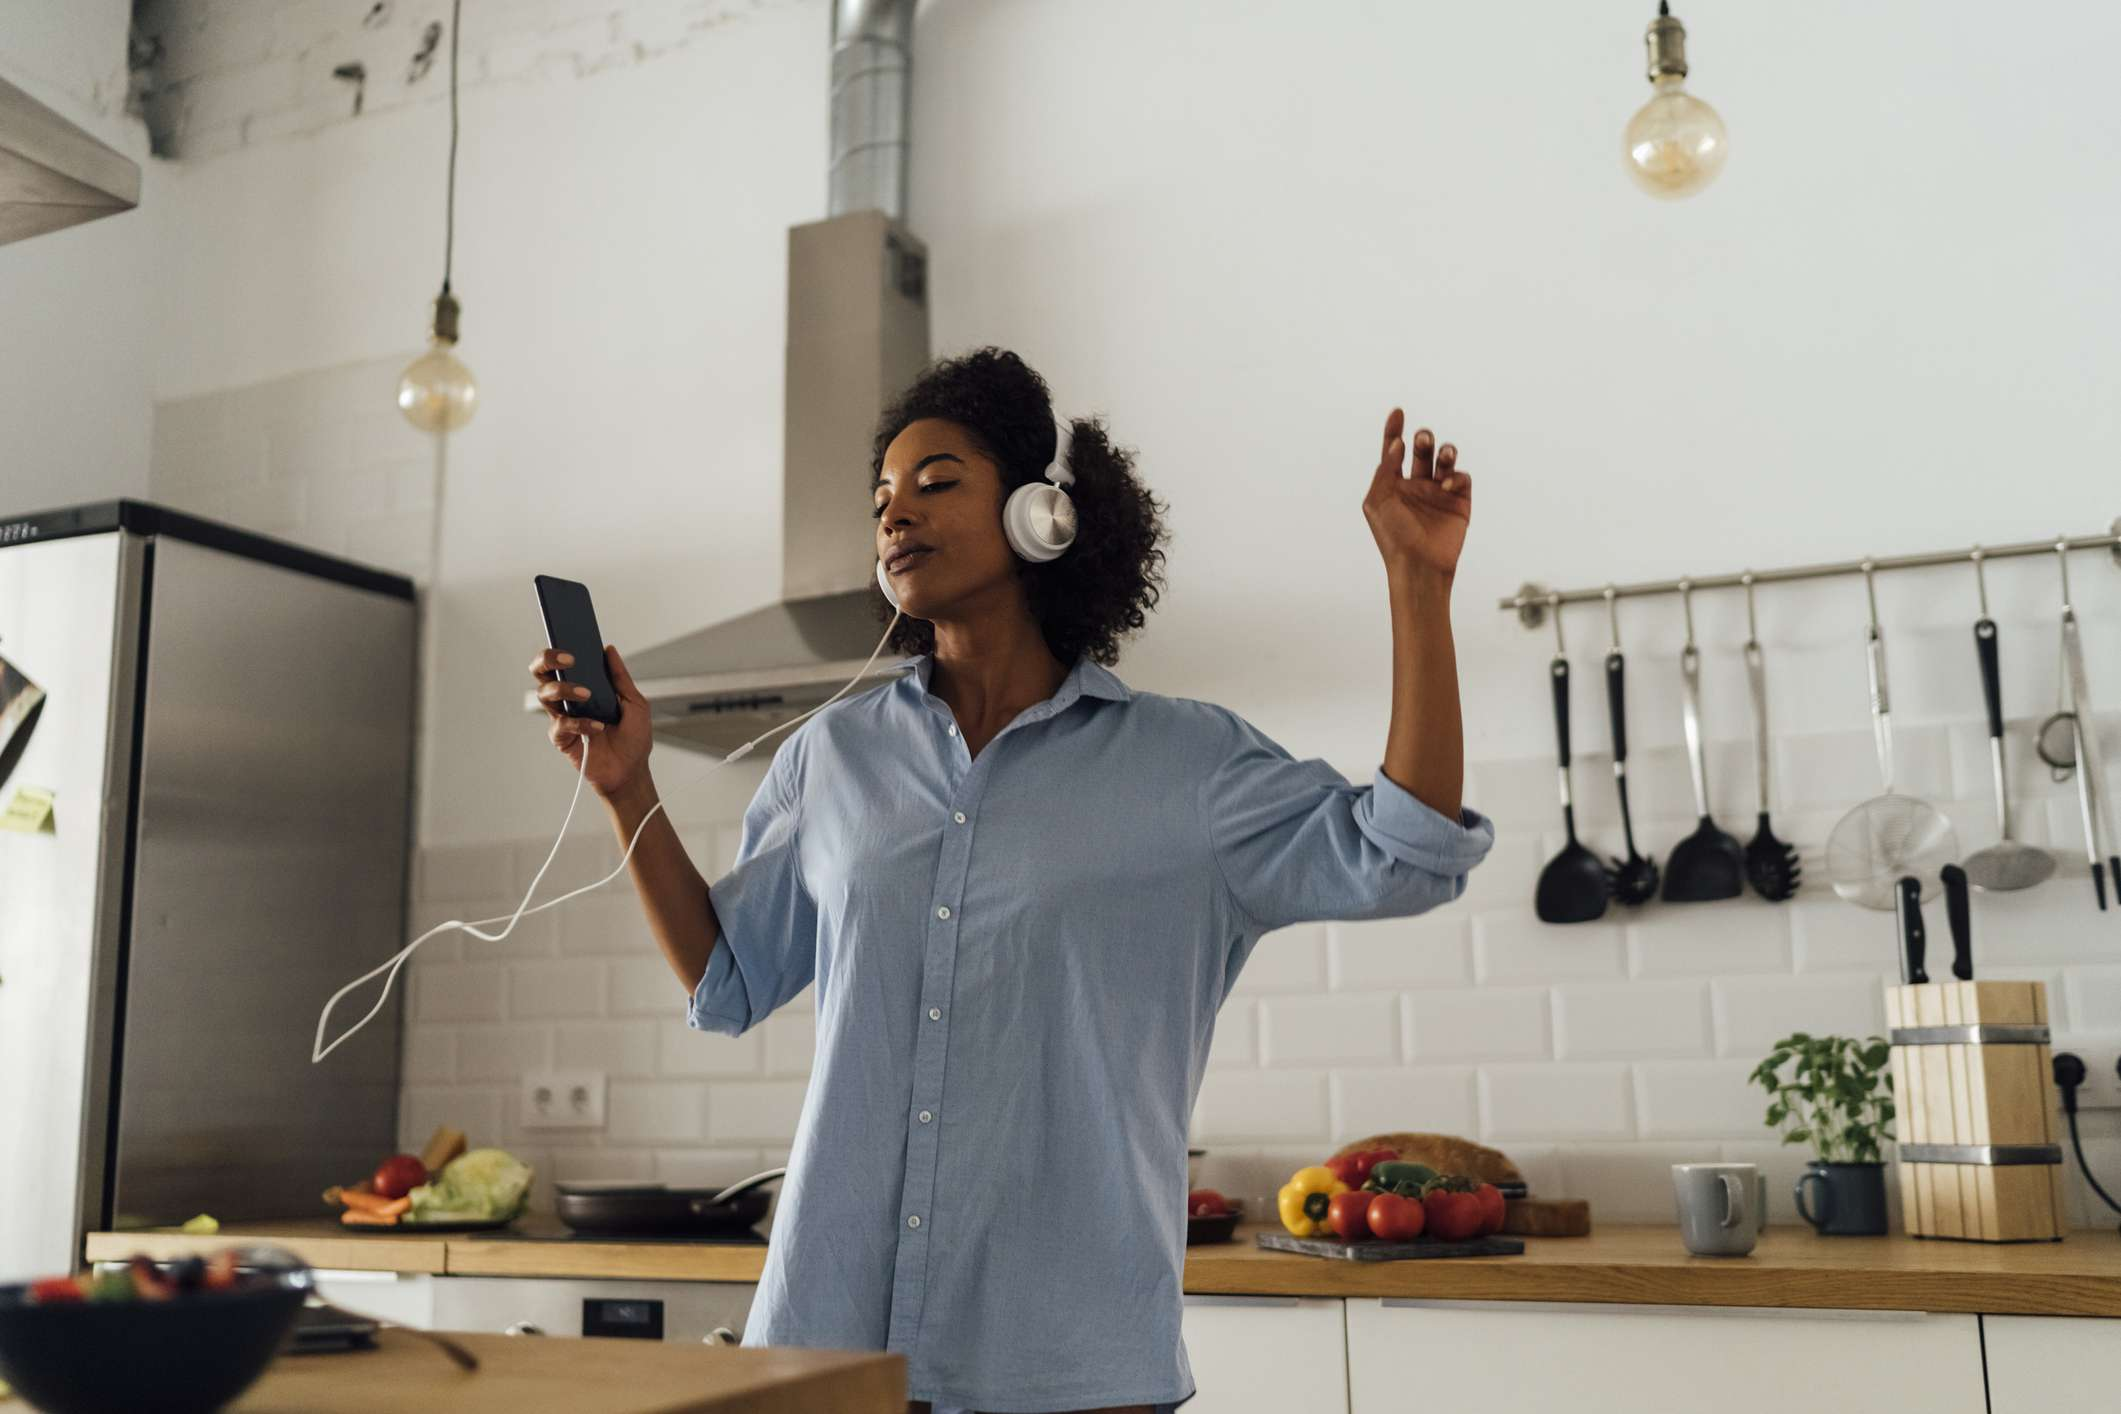 Woman listening to music on phone